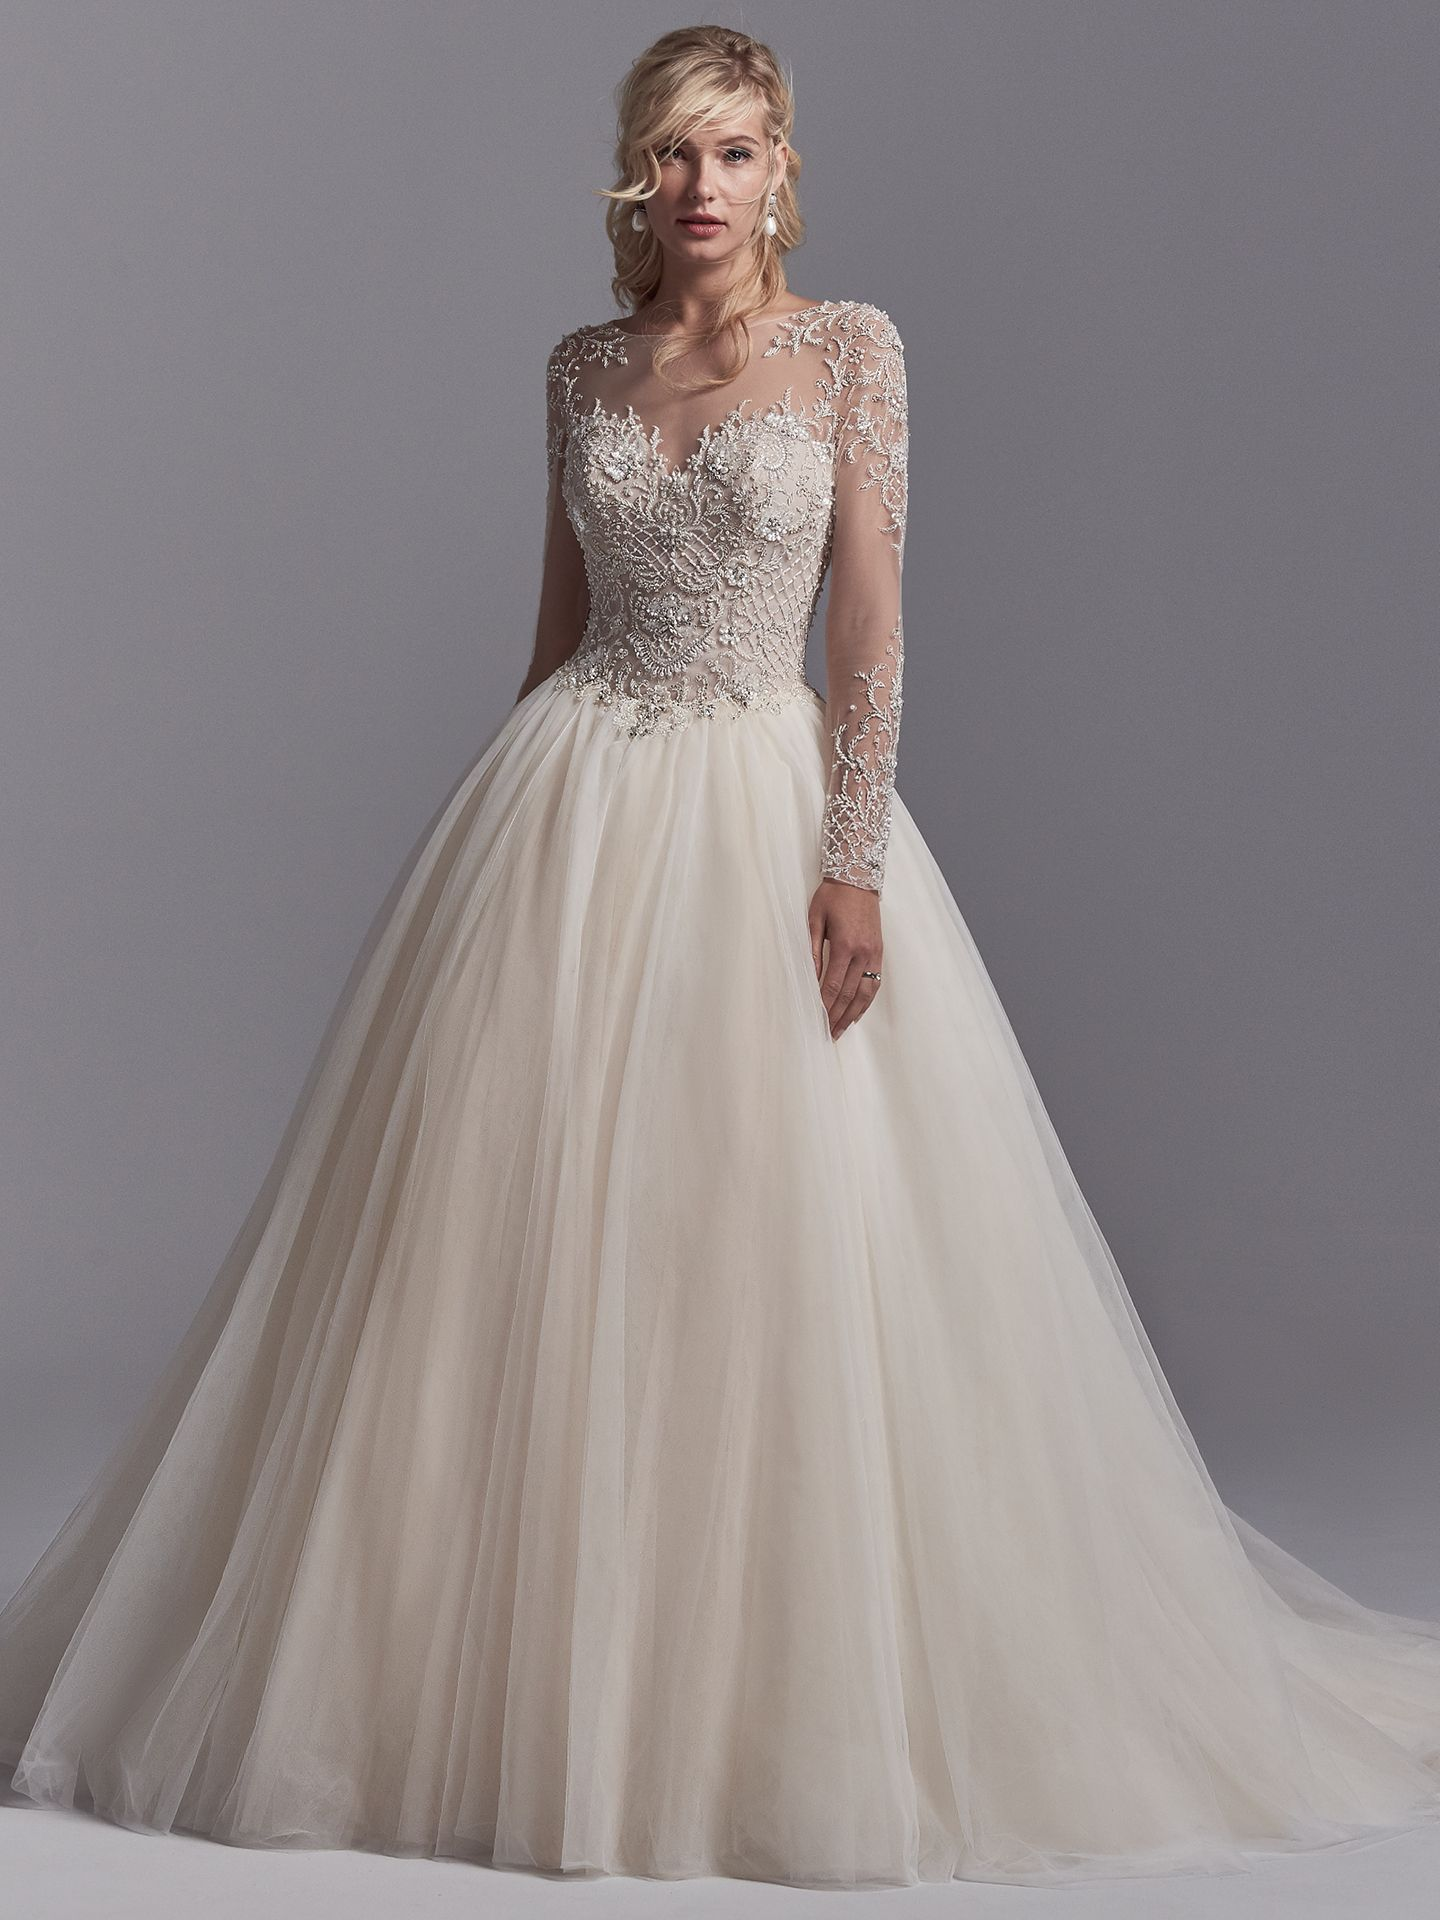 Favorite Sleeved Wedding dresses - Princess wedding dress with sleeves Calvin by Sottero & Midgley